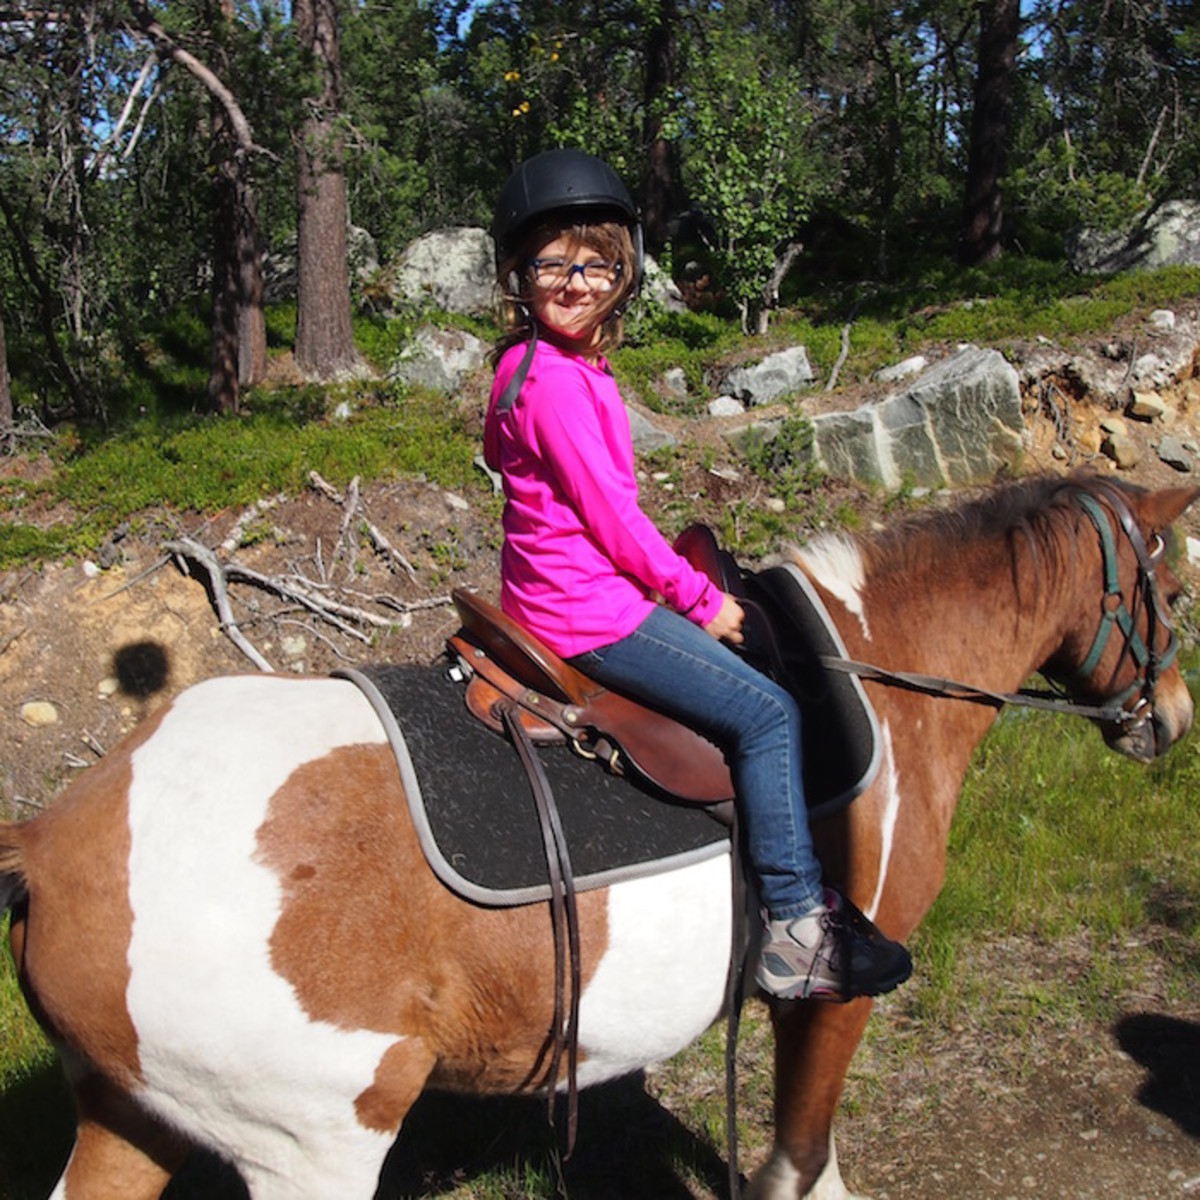 geilo horseback riding